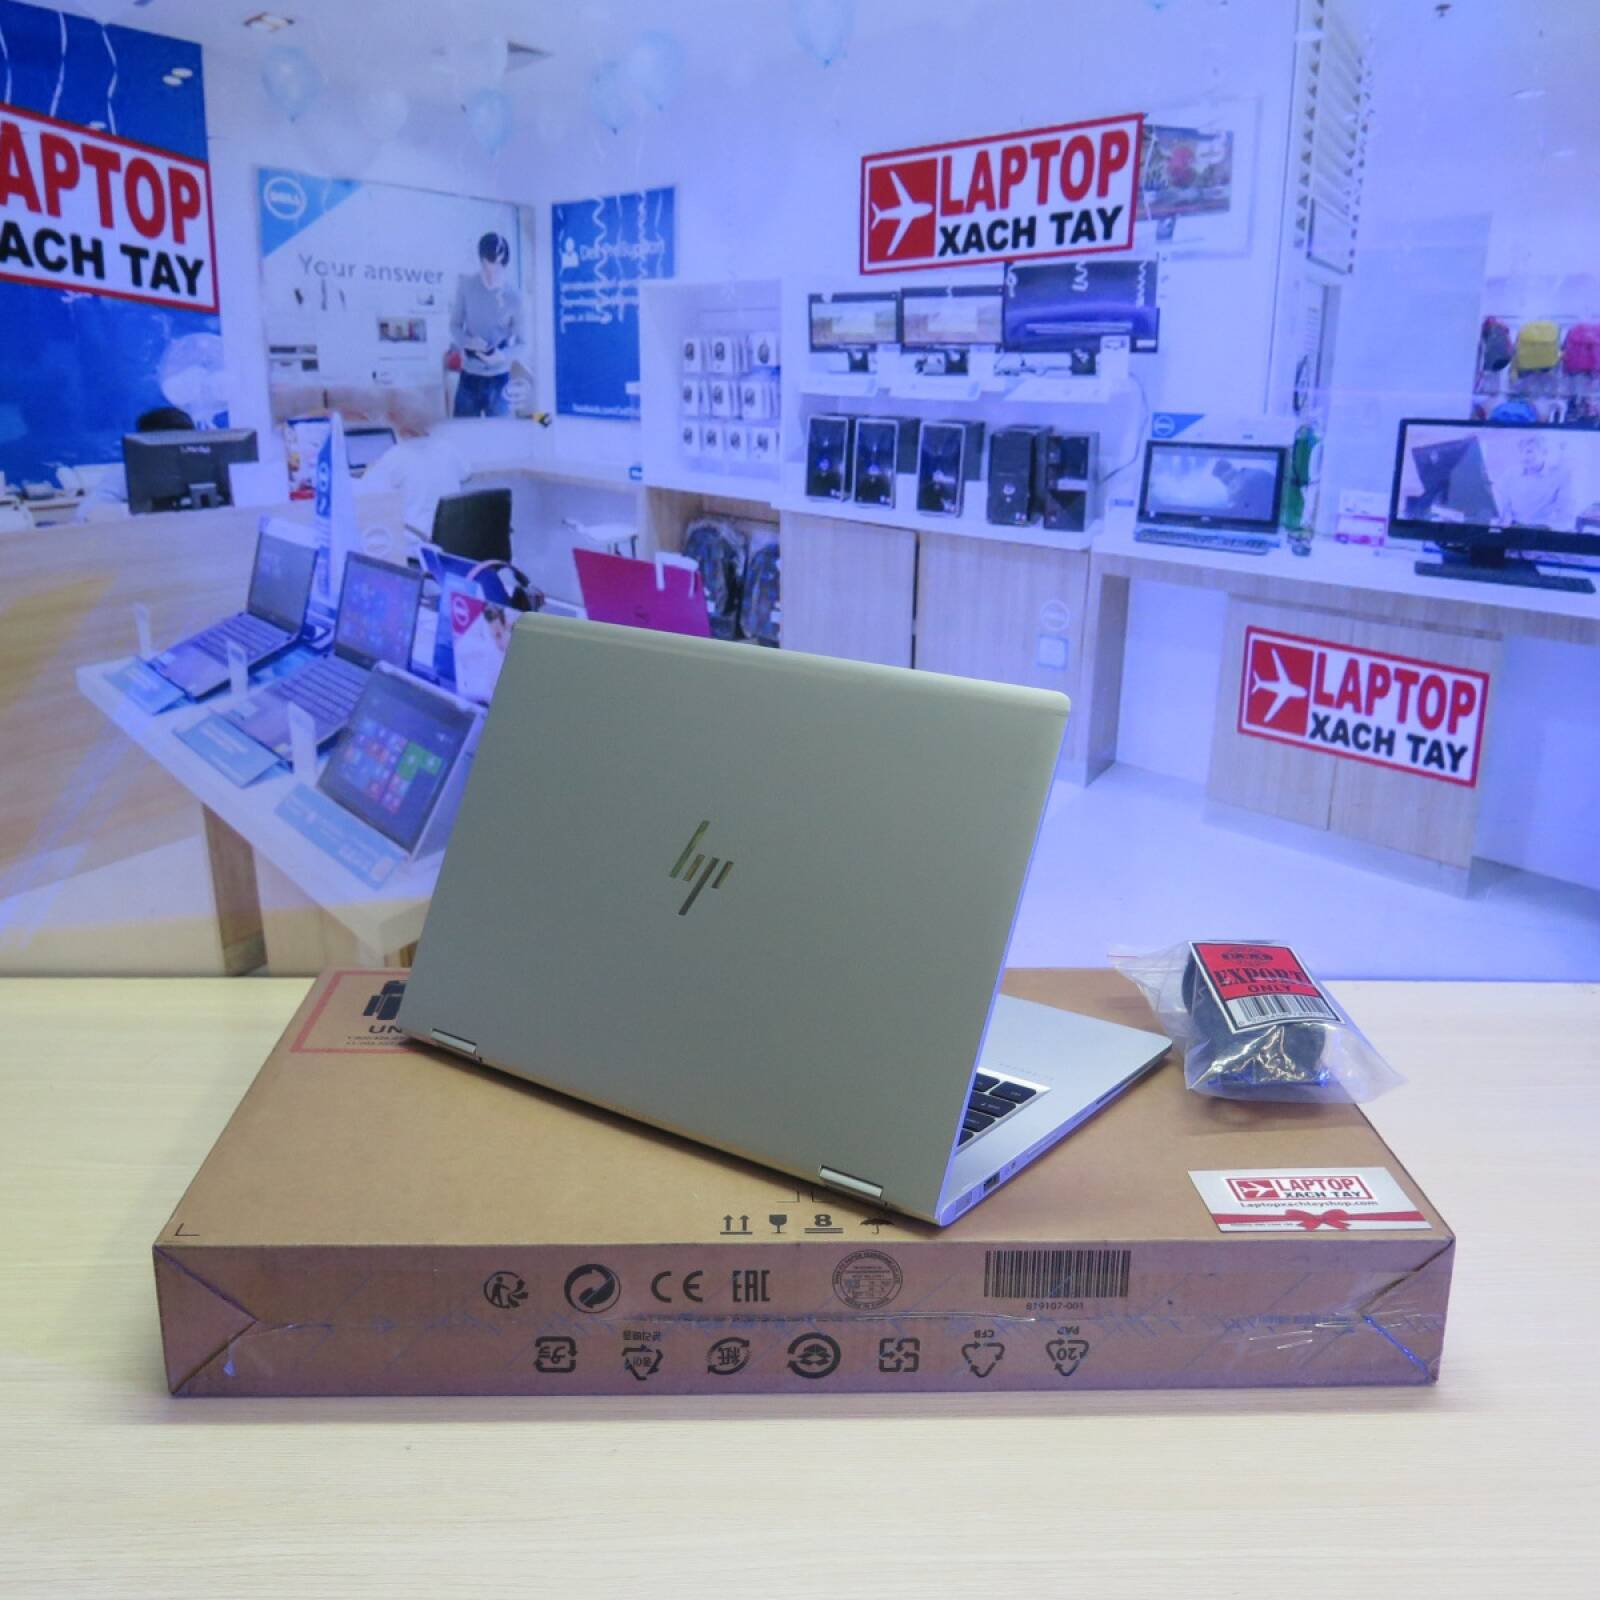 HP Elitebook X360 1030 G2 tại Laptopxachtayshop.com